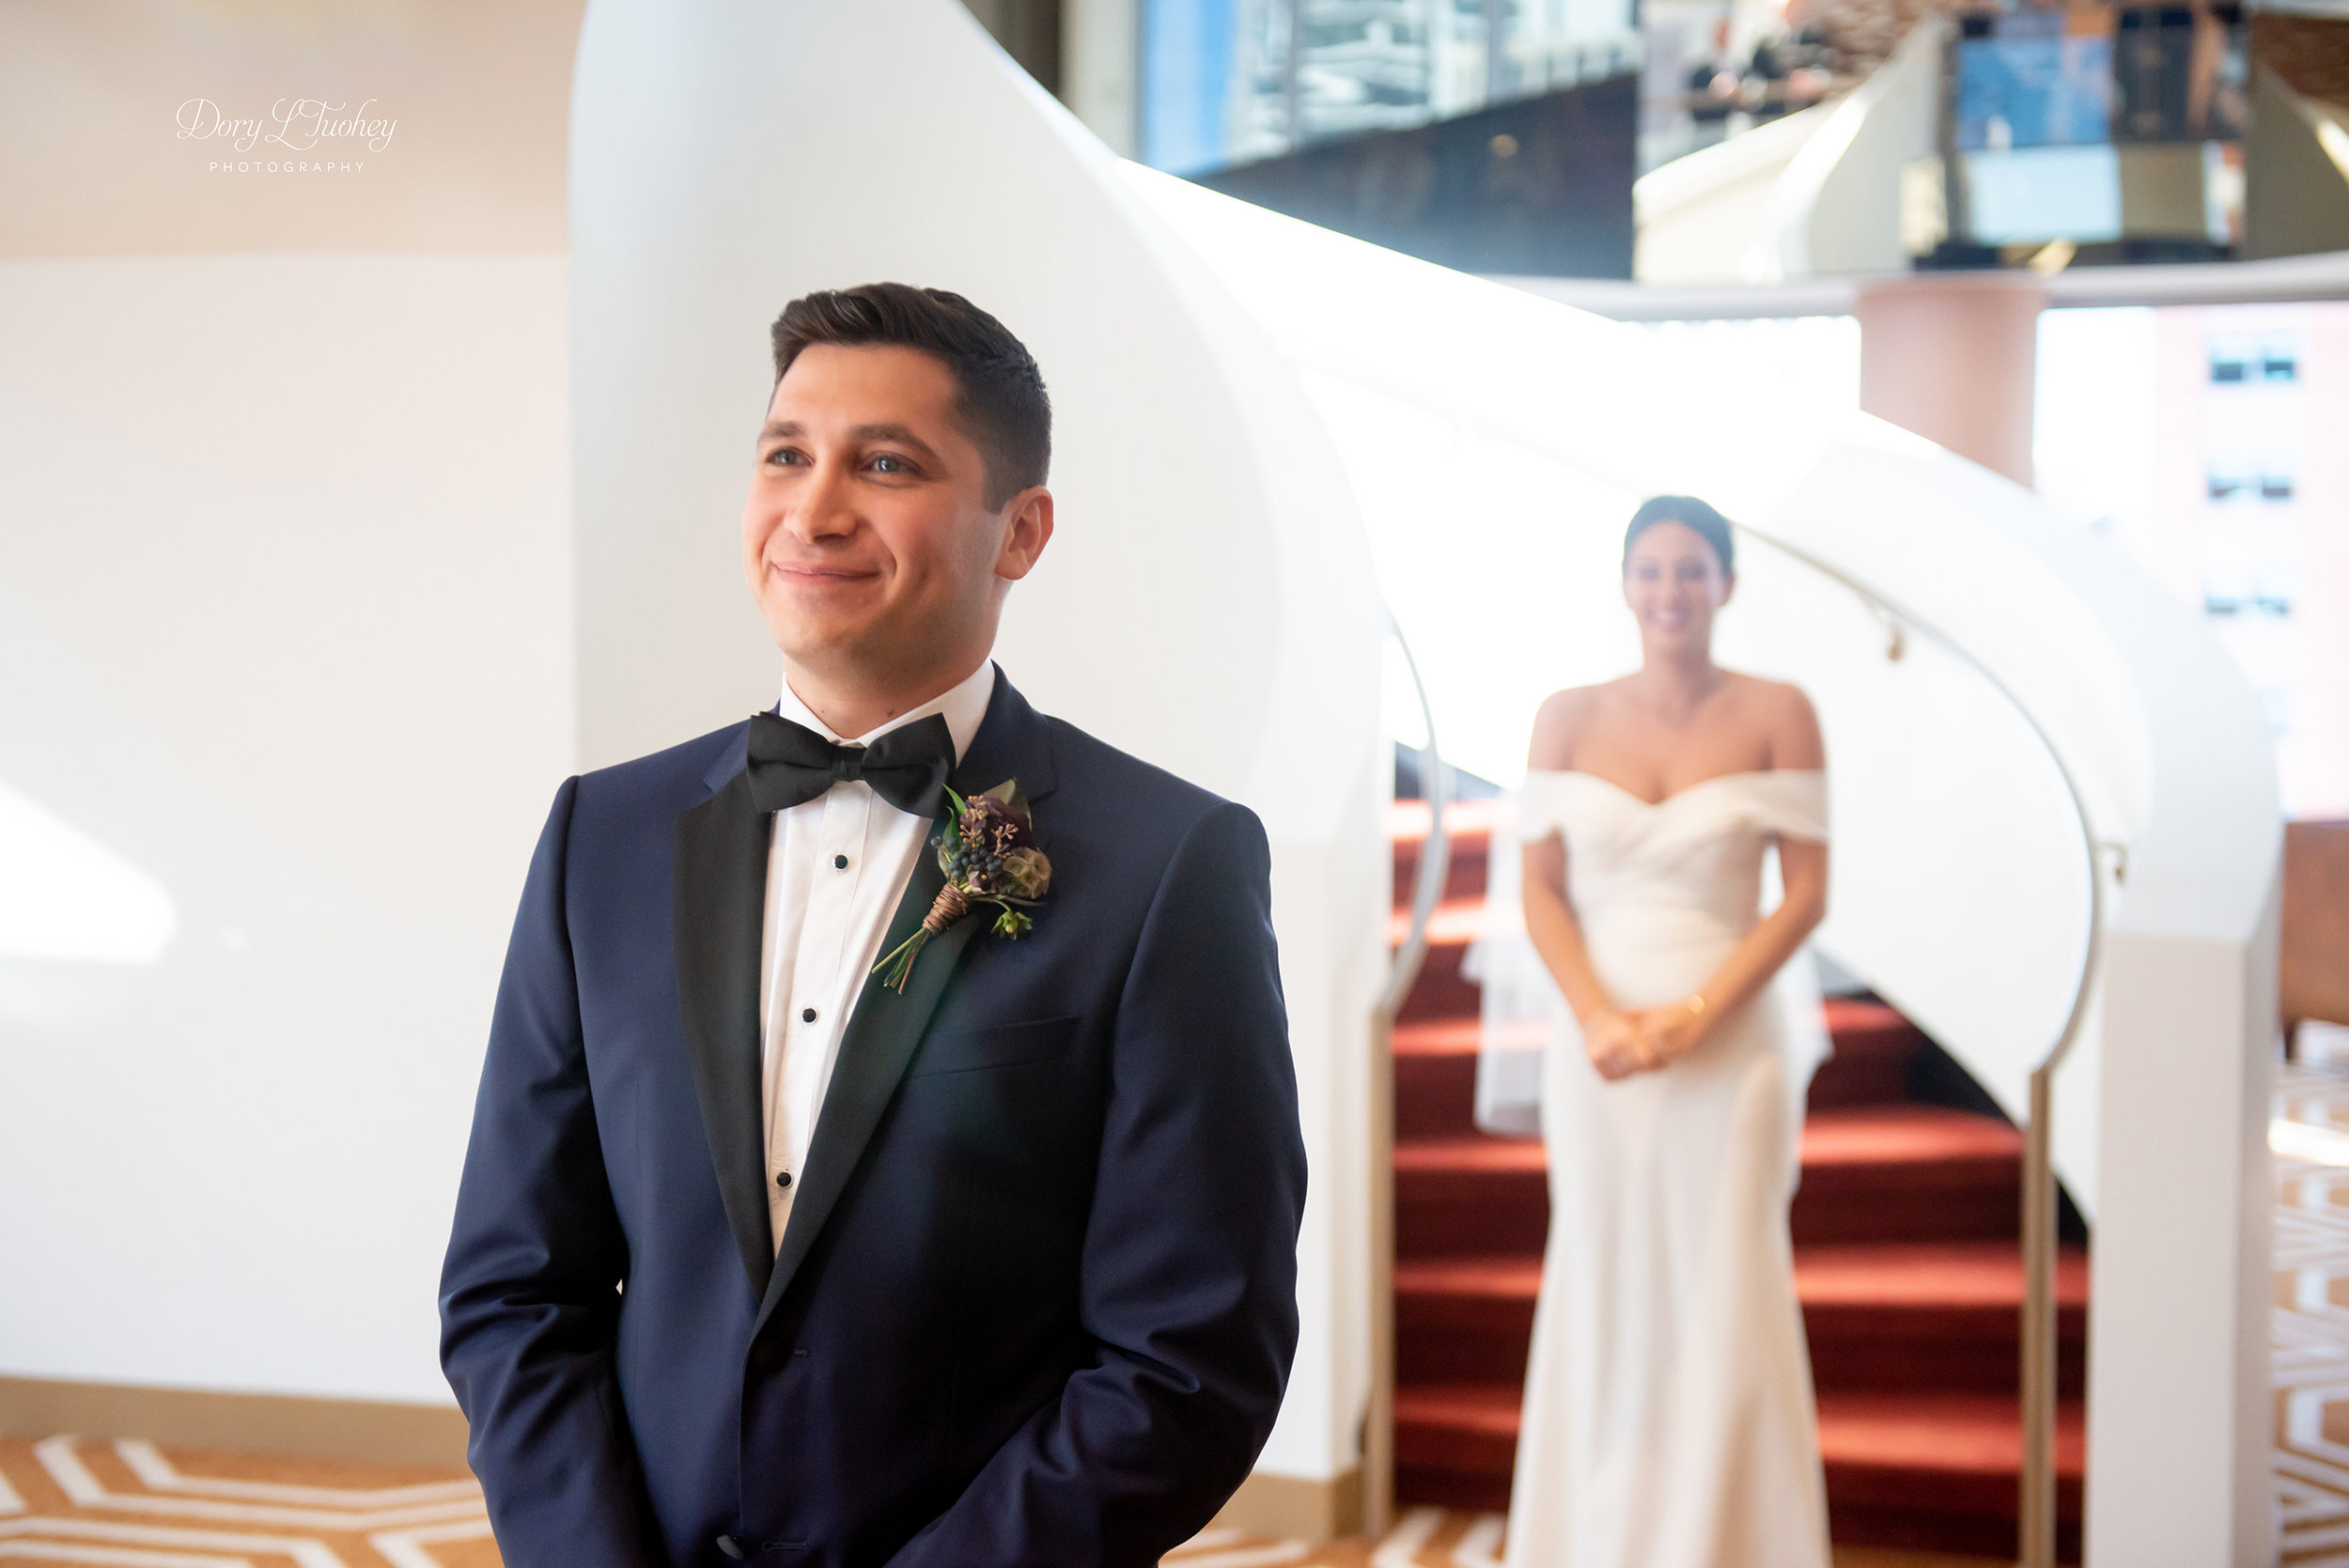 Dory_chicago_wedding_navy_pier_boat_cruise_skyline_sunset_jewish_bride_groom_08.jpg